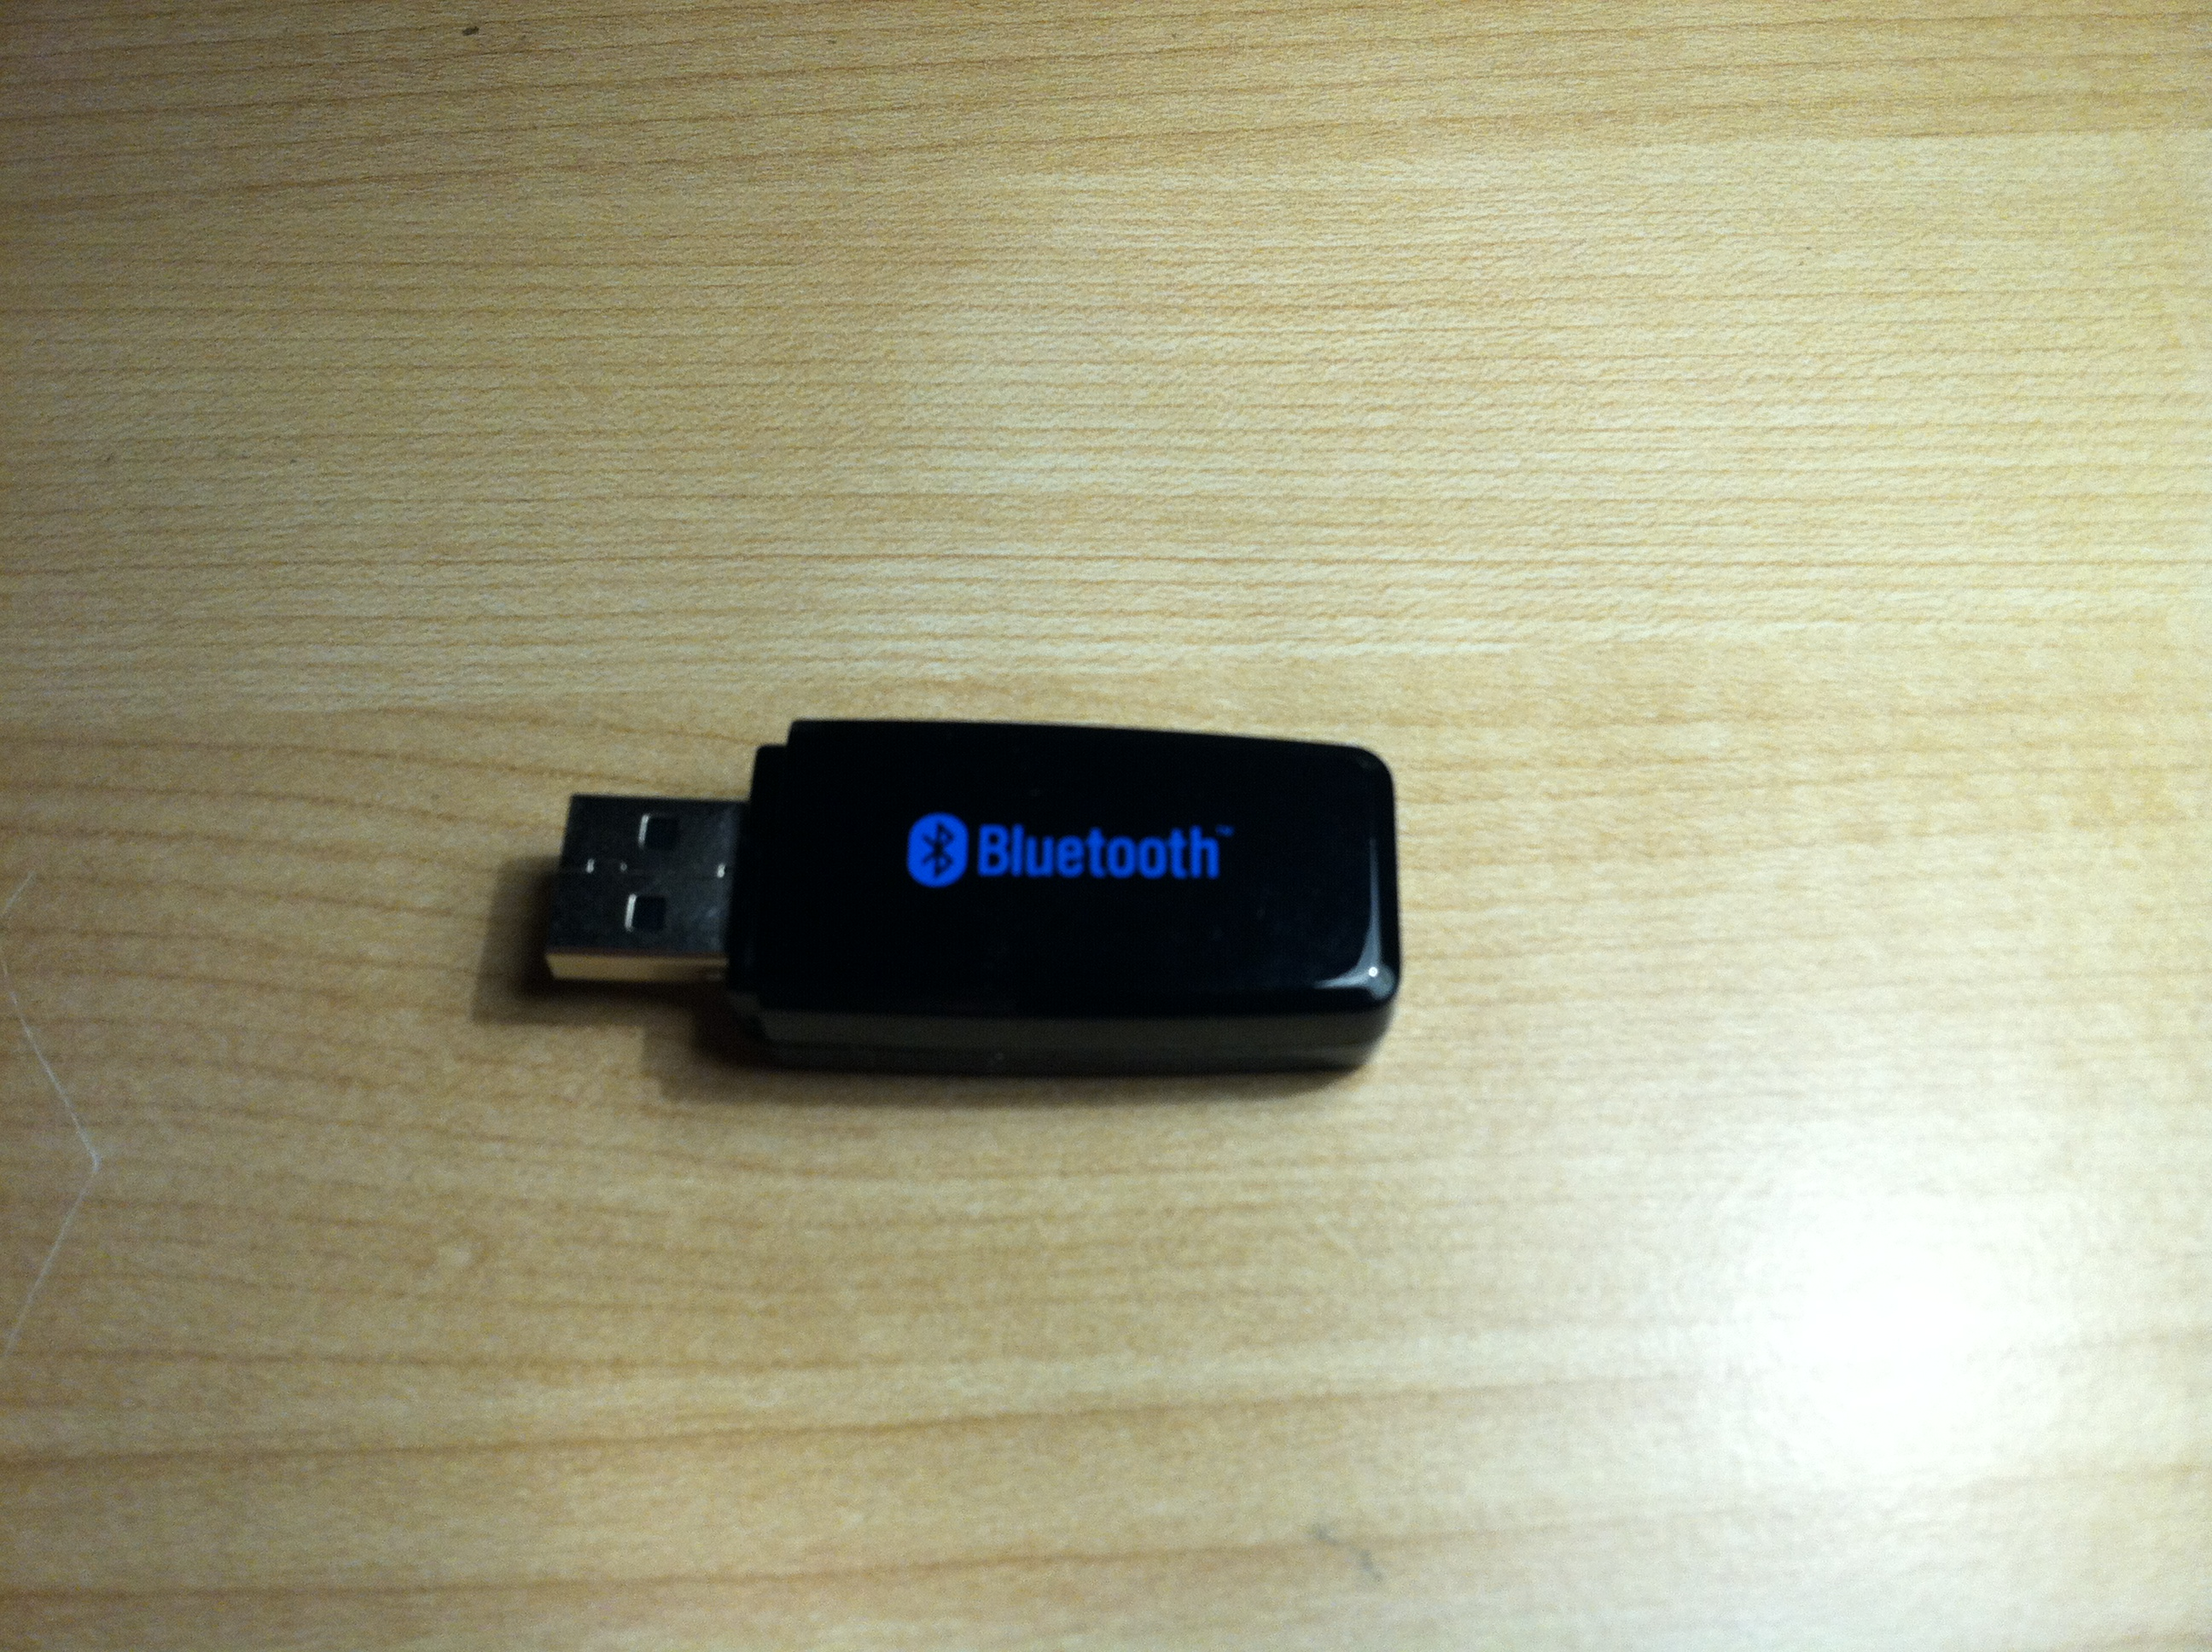 Bluetooth Audio for Your Car